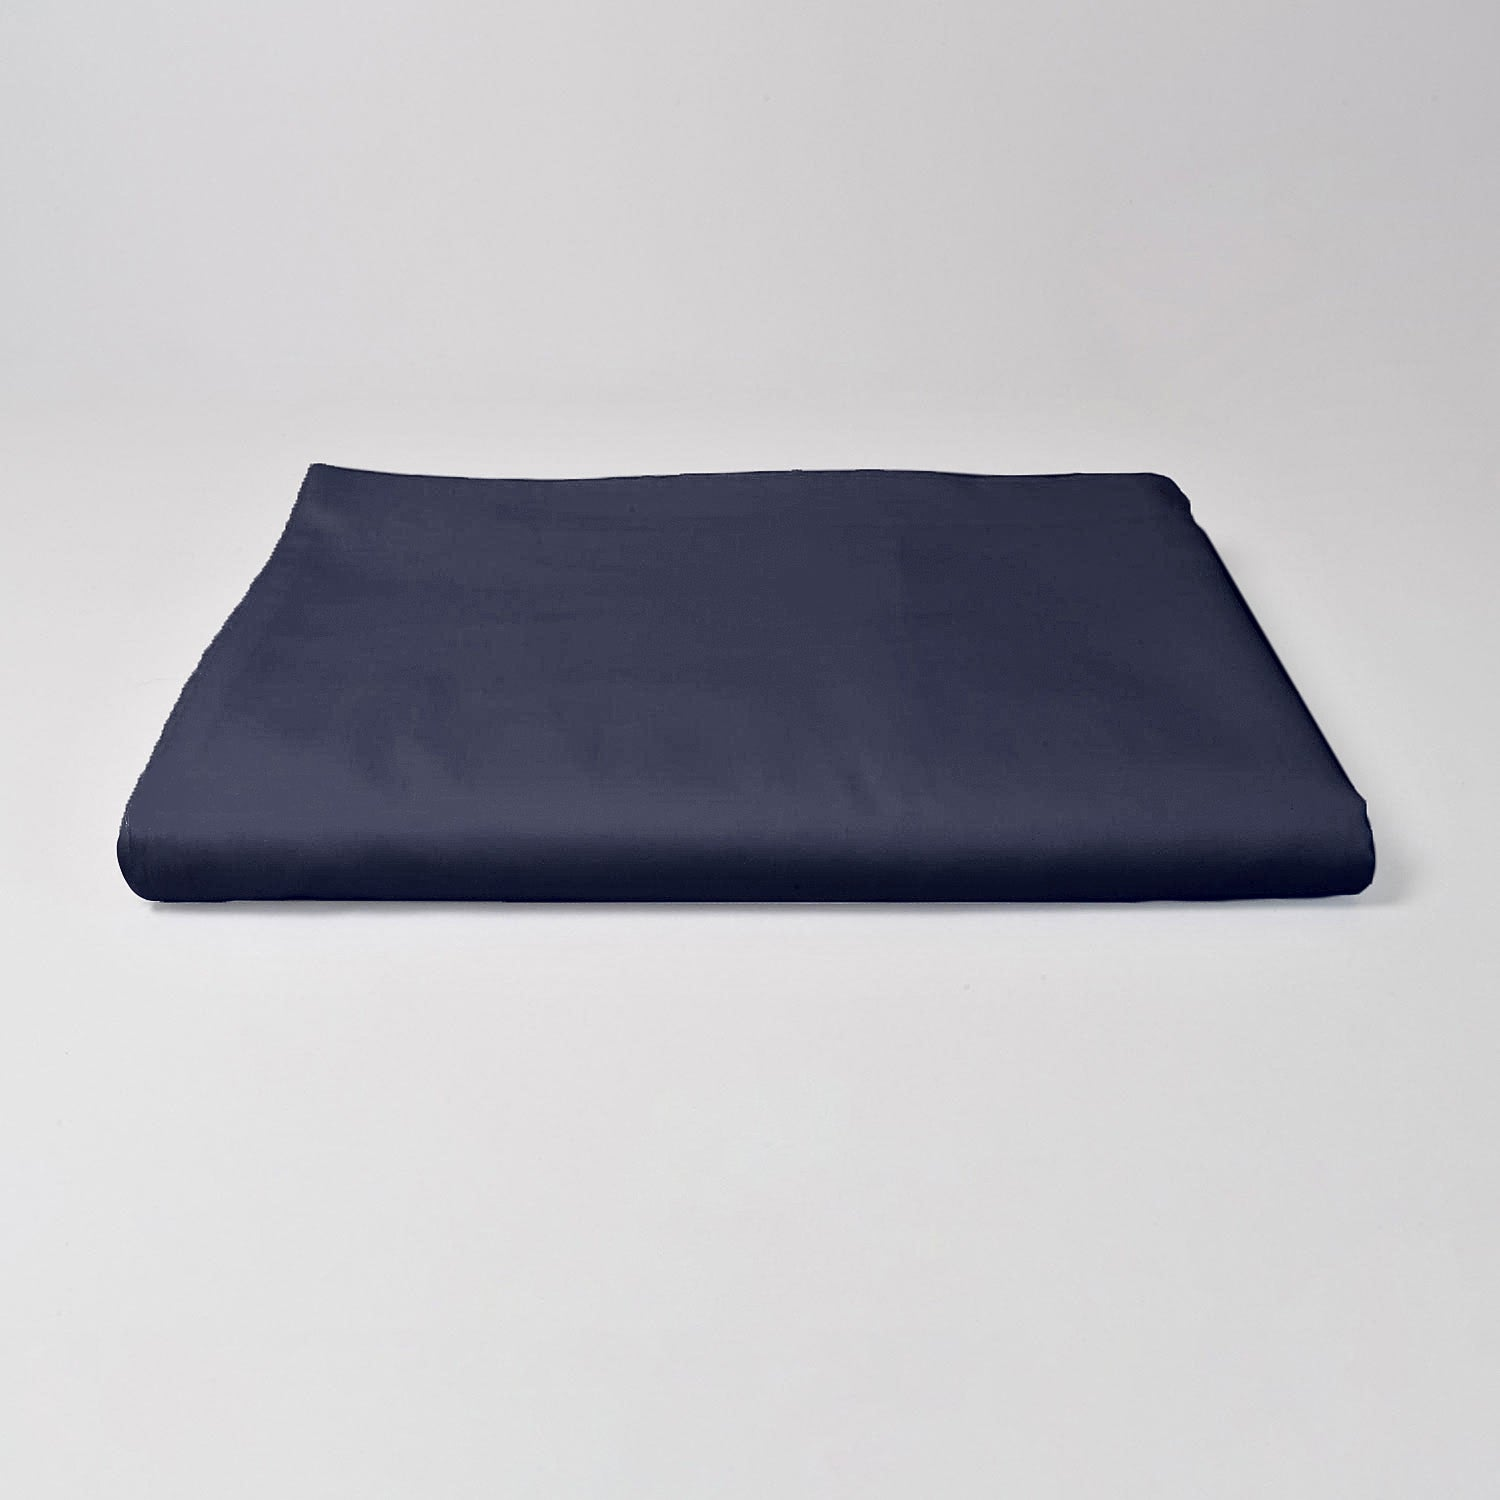 Luxus Bettlaken - Navy Blue